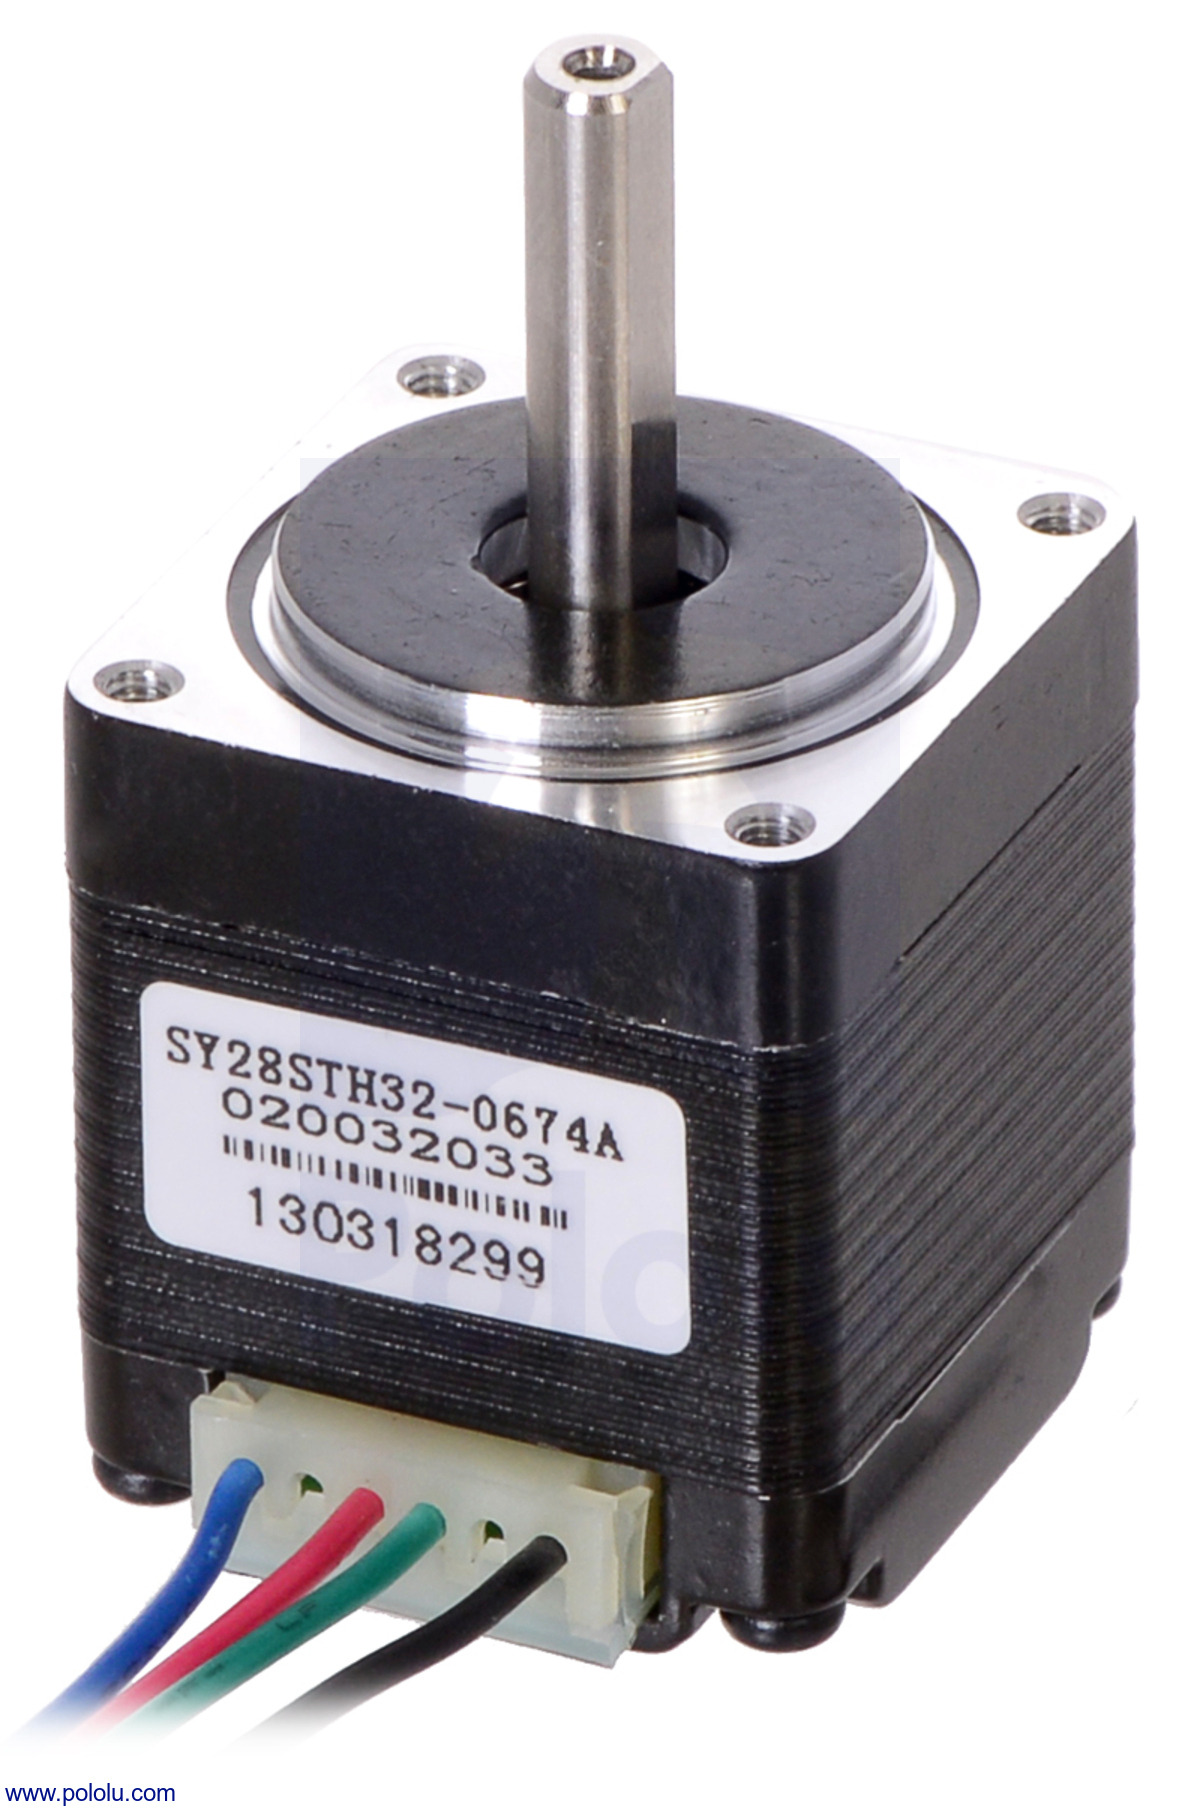 Pololu stepper motor bipolar 200 steps rev 28 32mm 3 for 3 phase stepper motor